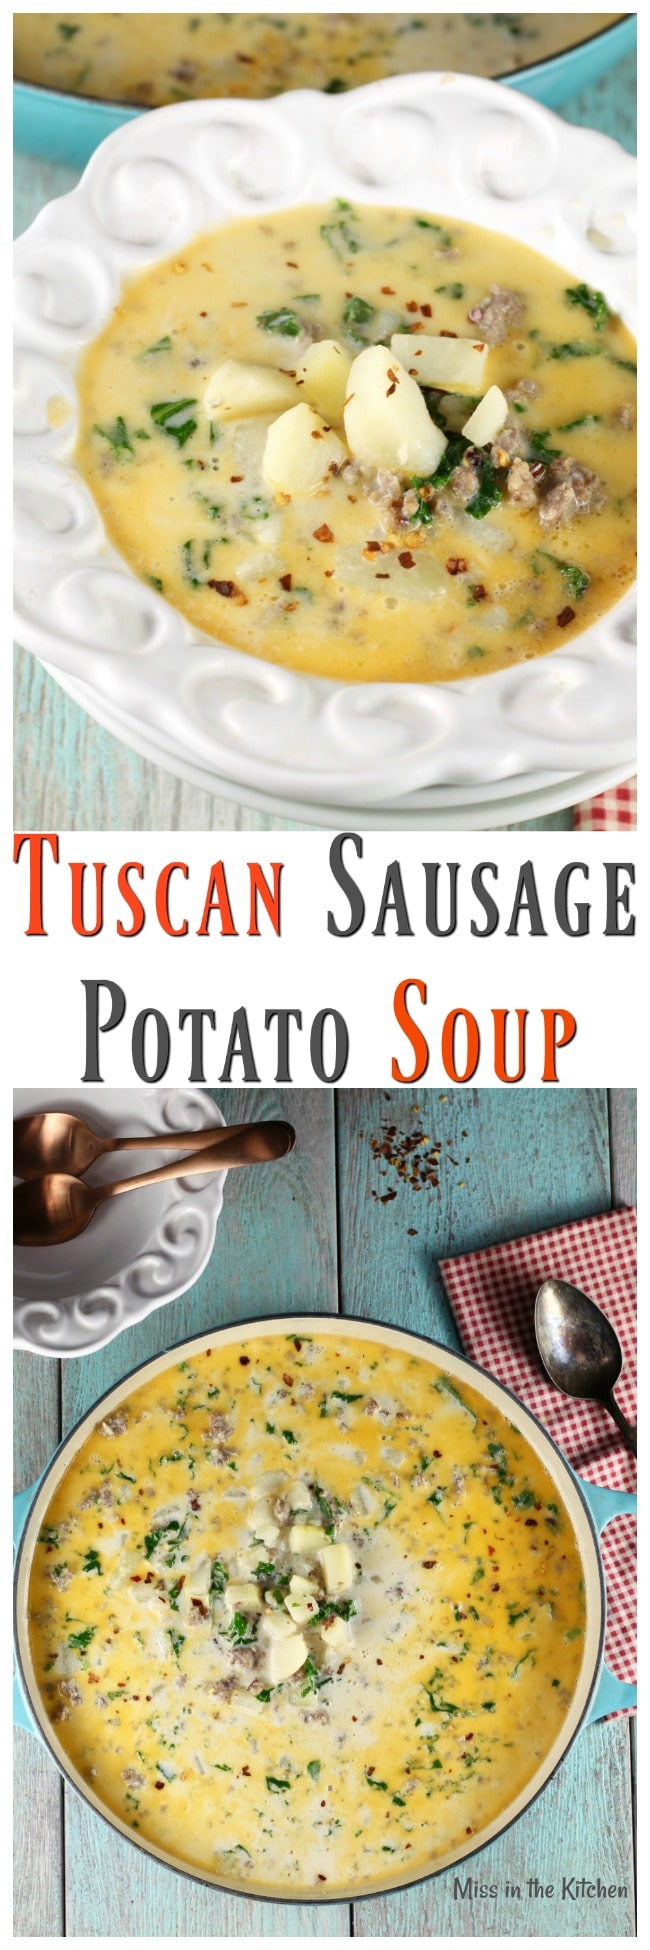 Tuscan Sausage Potato Soup Recipe from The Simple Kitchen Cookbook ~ MissintheKitchen.com #soup #recipe #tuscan #comfortfood